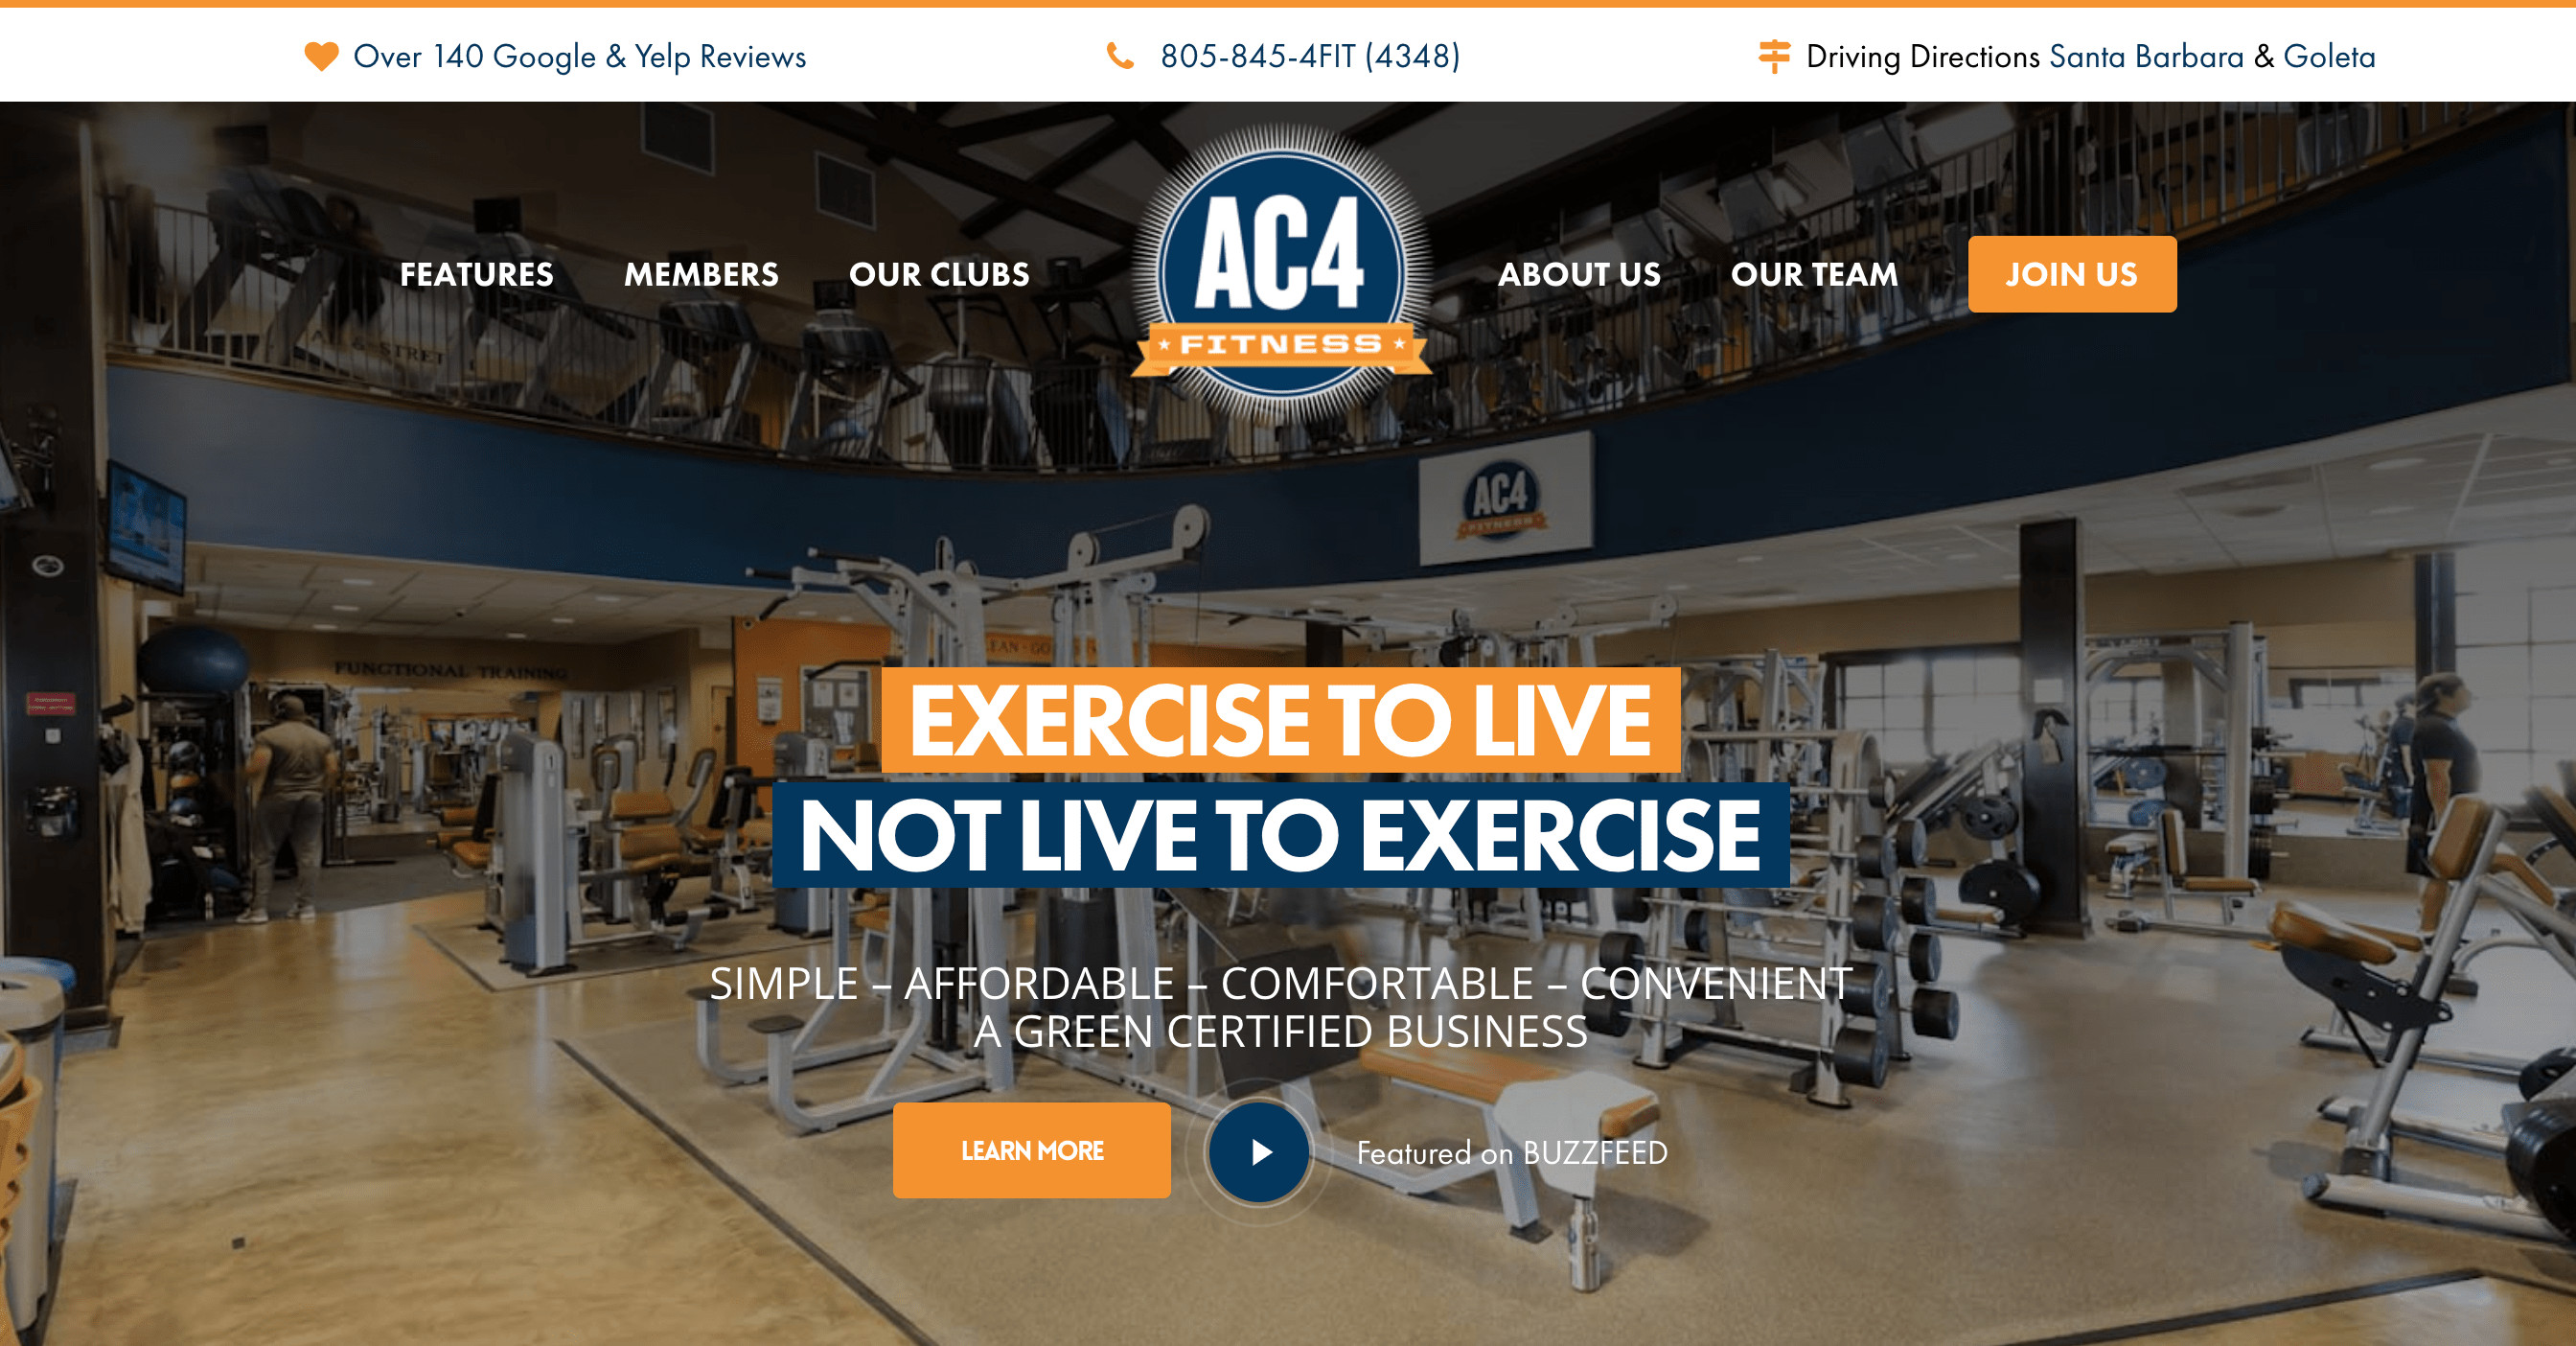 Santa Barbara Web Design and Web Development - AC4